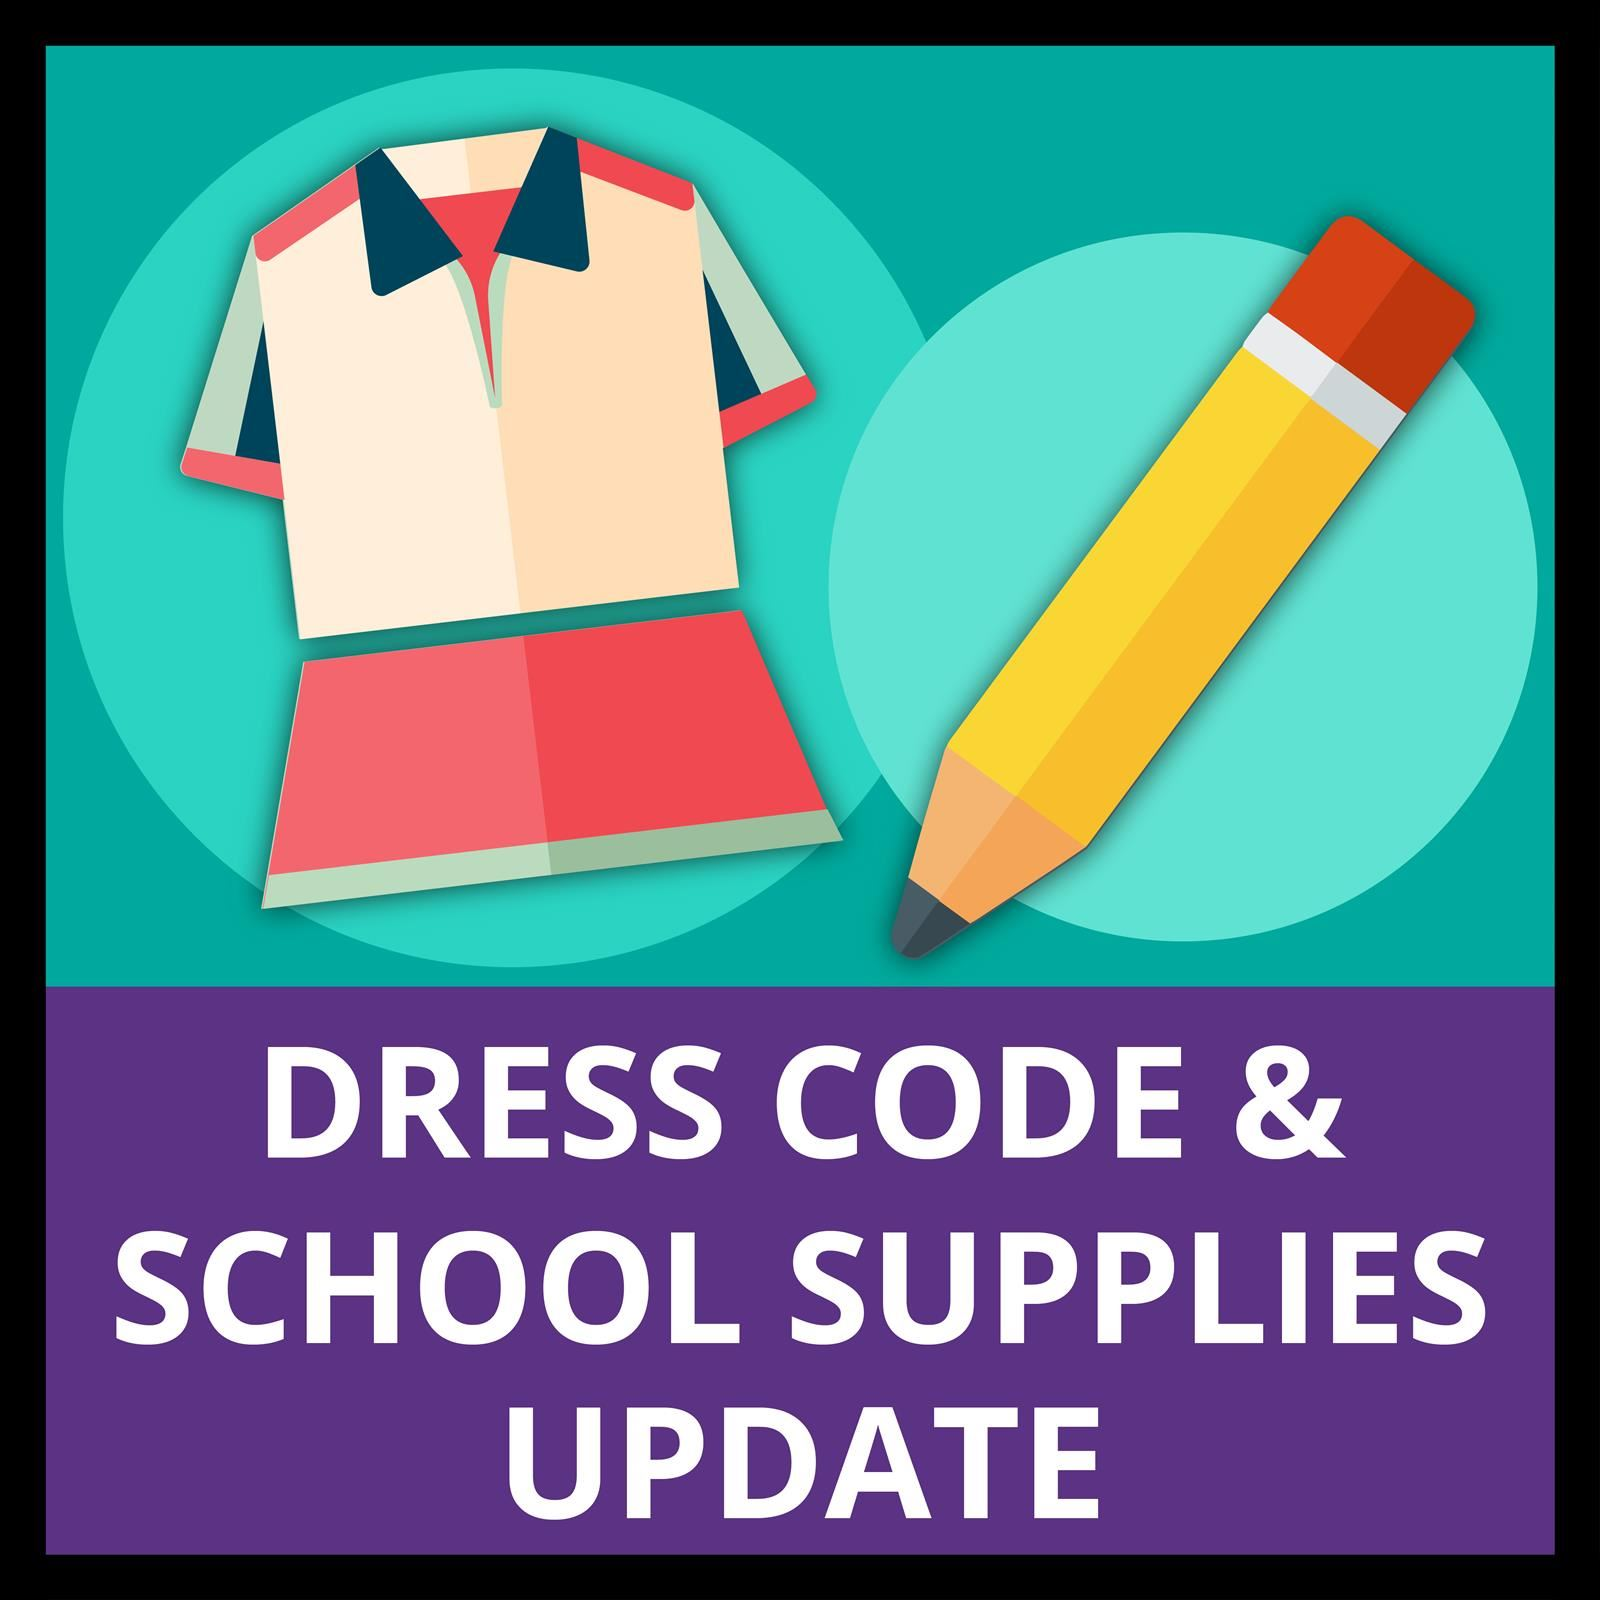 Important updates to our dress code and school supply lists